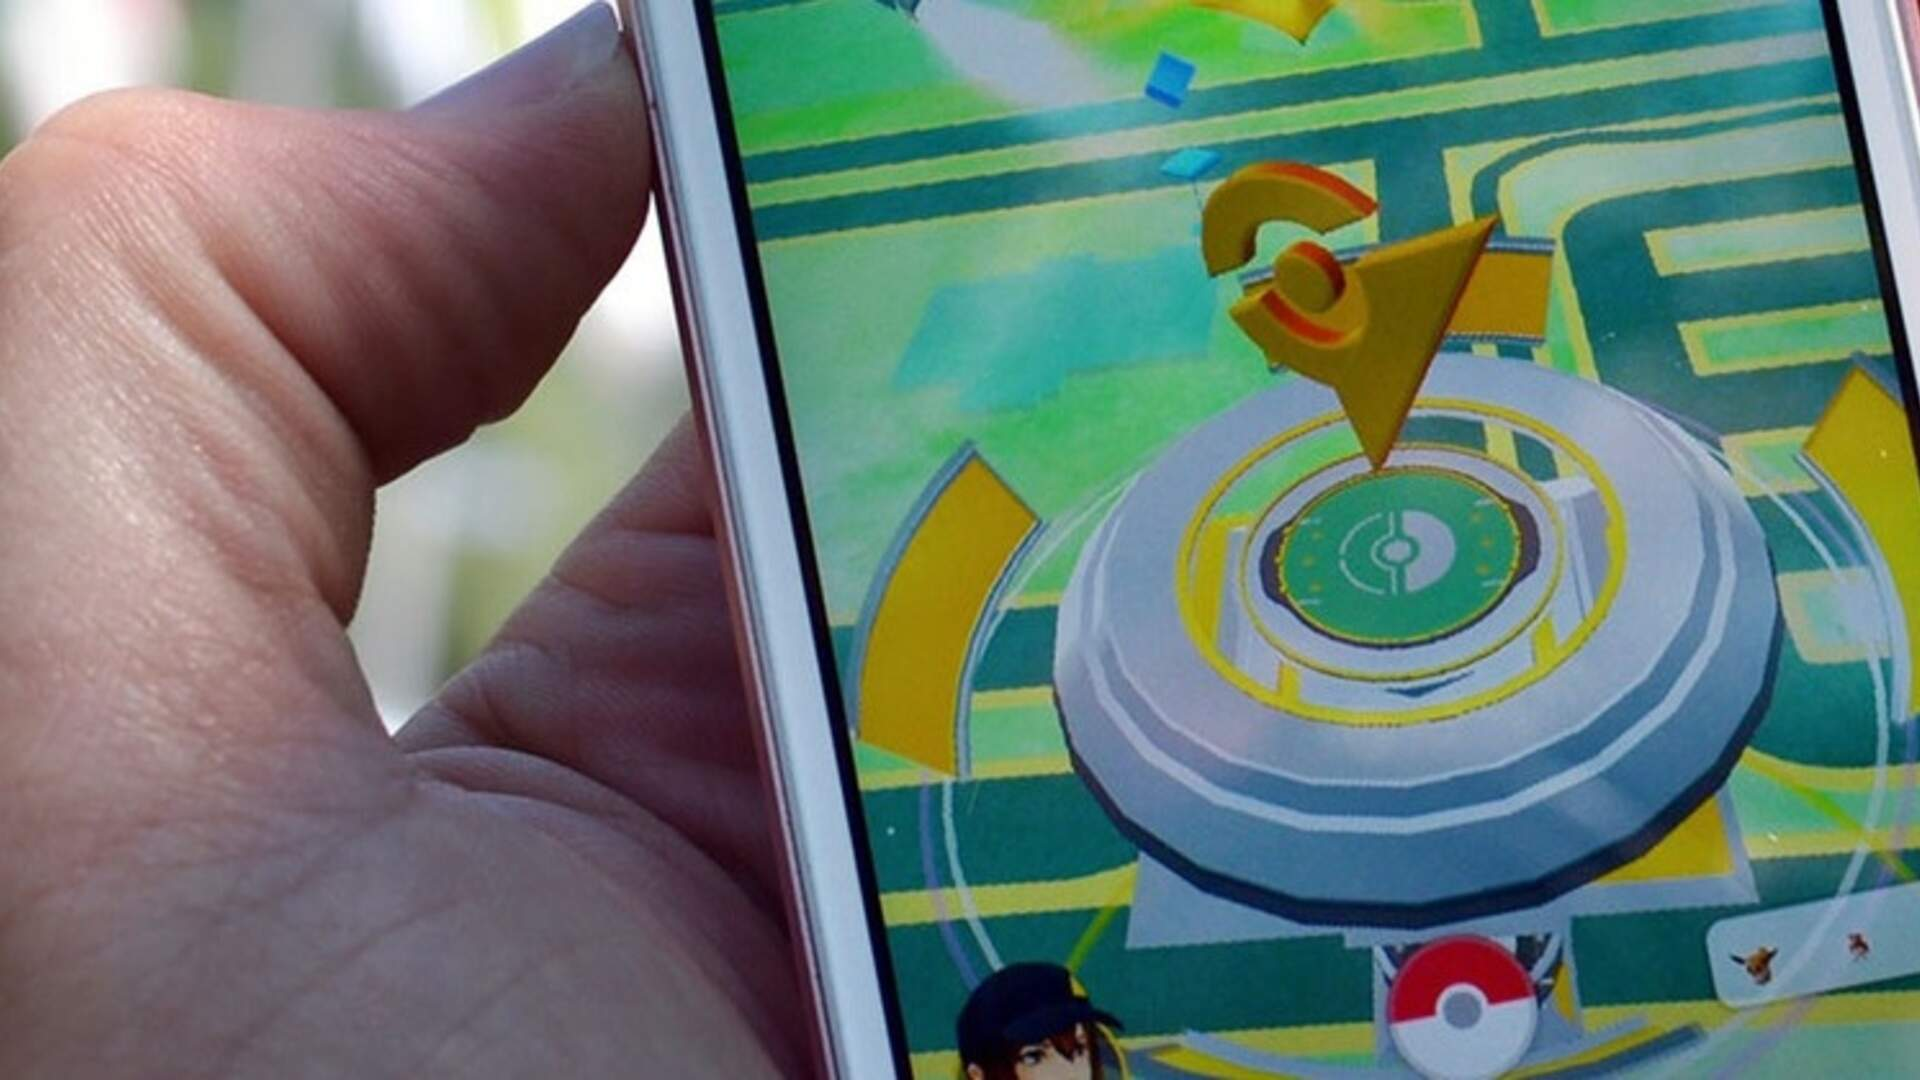 Pokemon Go Passes 500 Million Downloads Worldwide